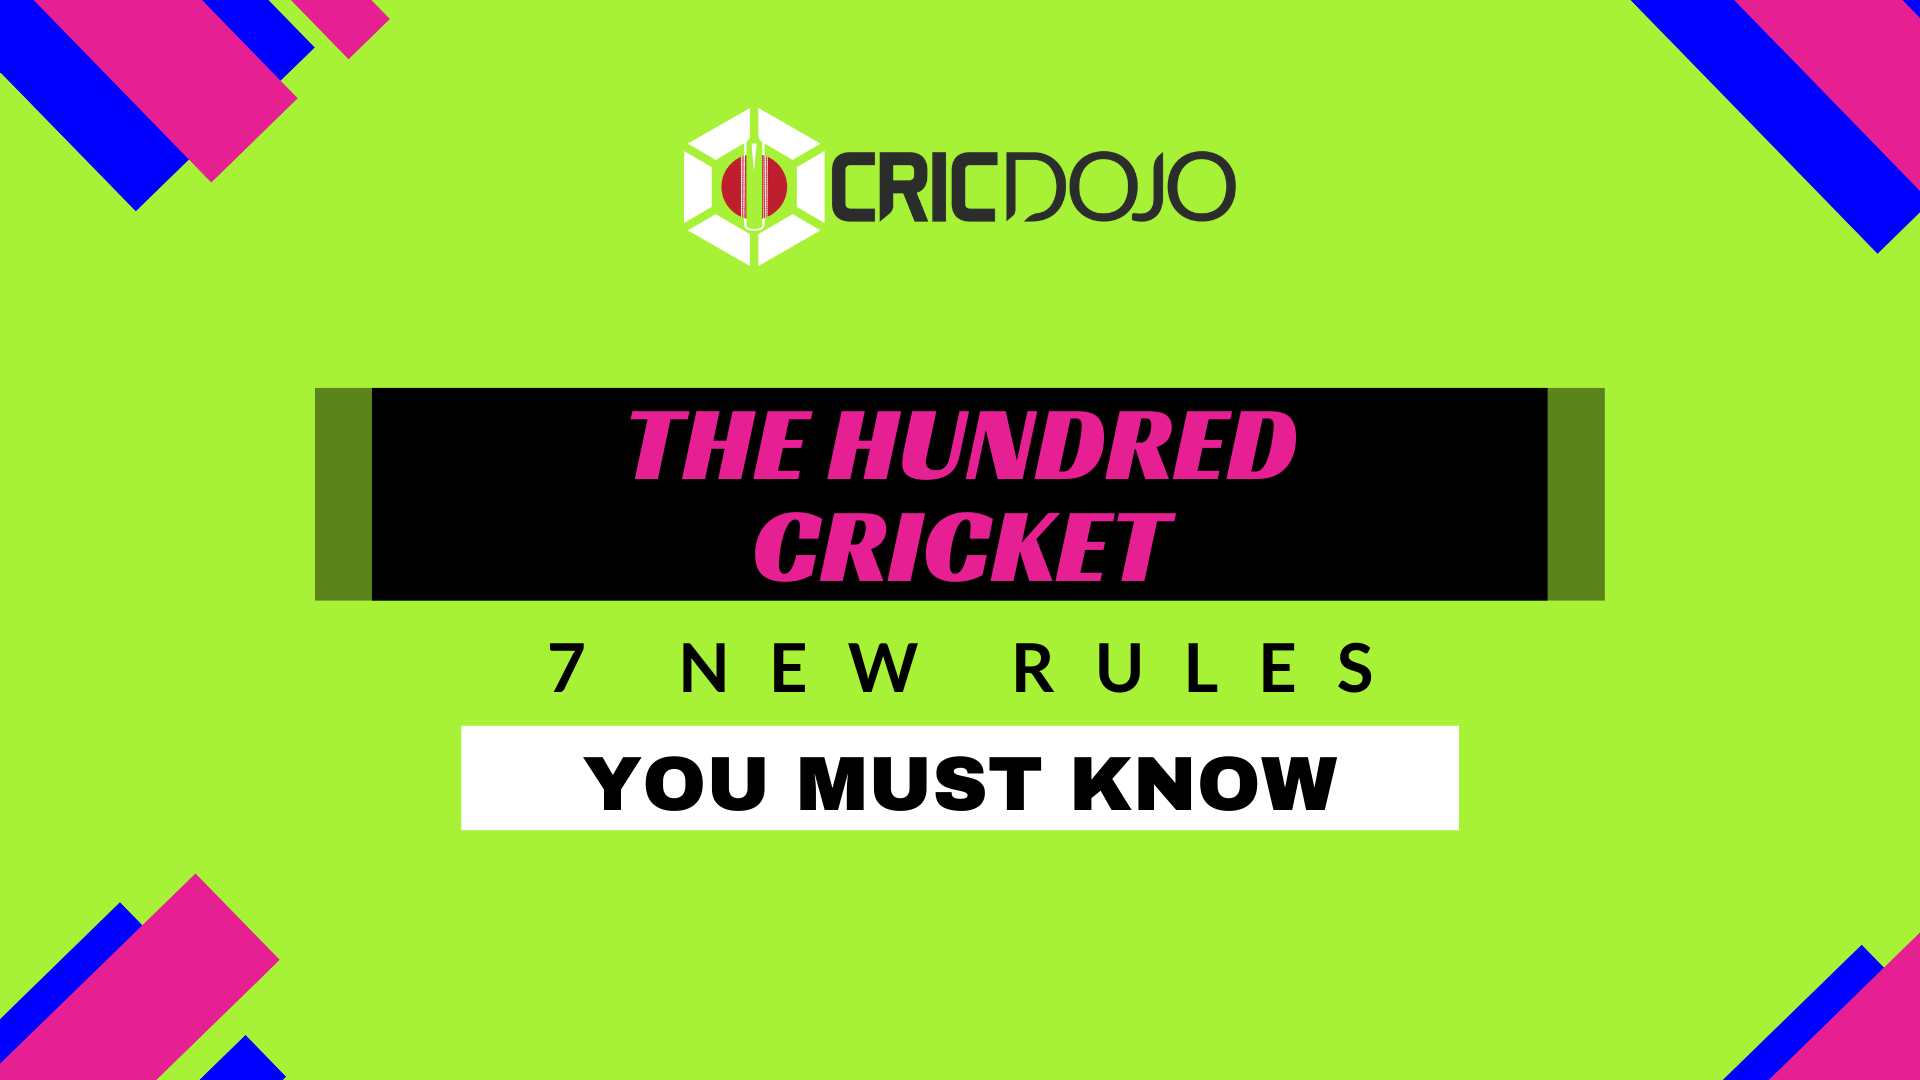 The Hundred Cricket – All You Need to Know